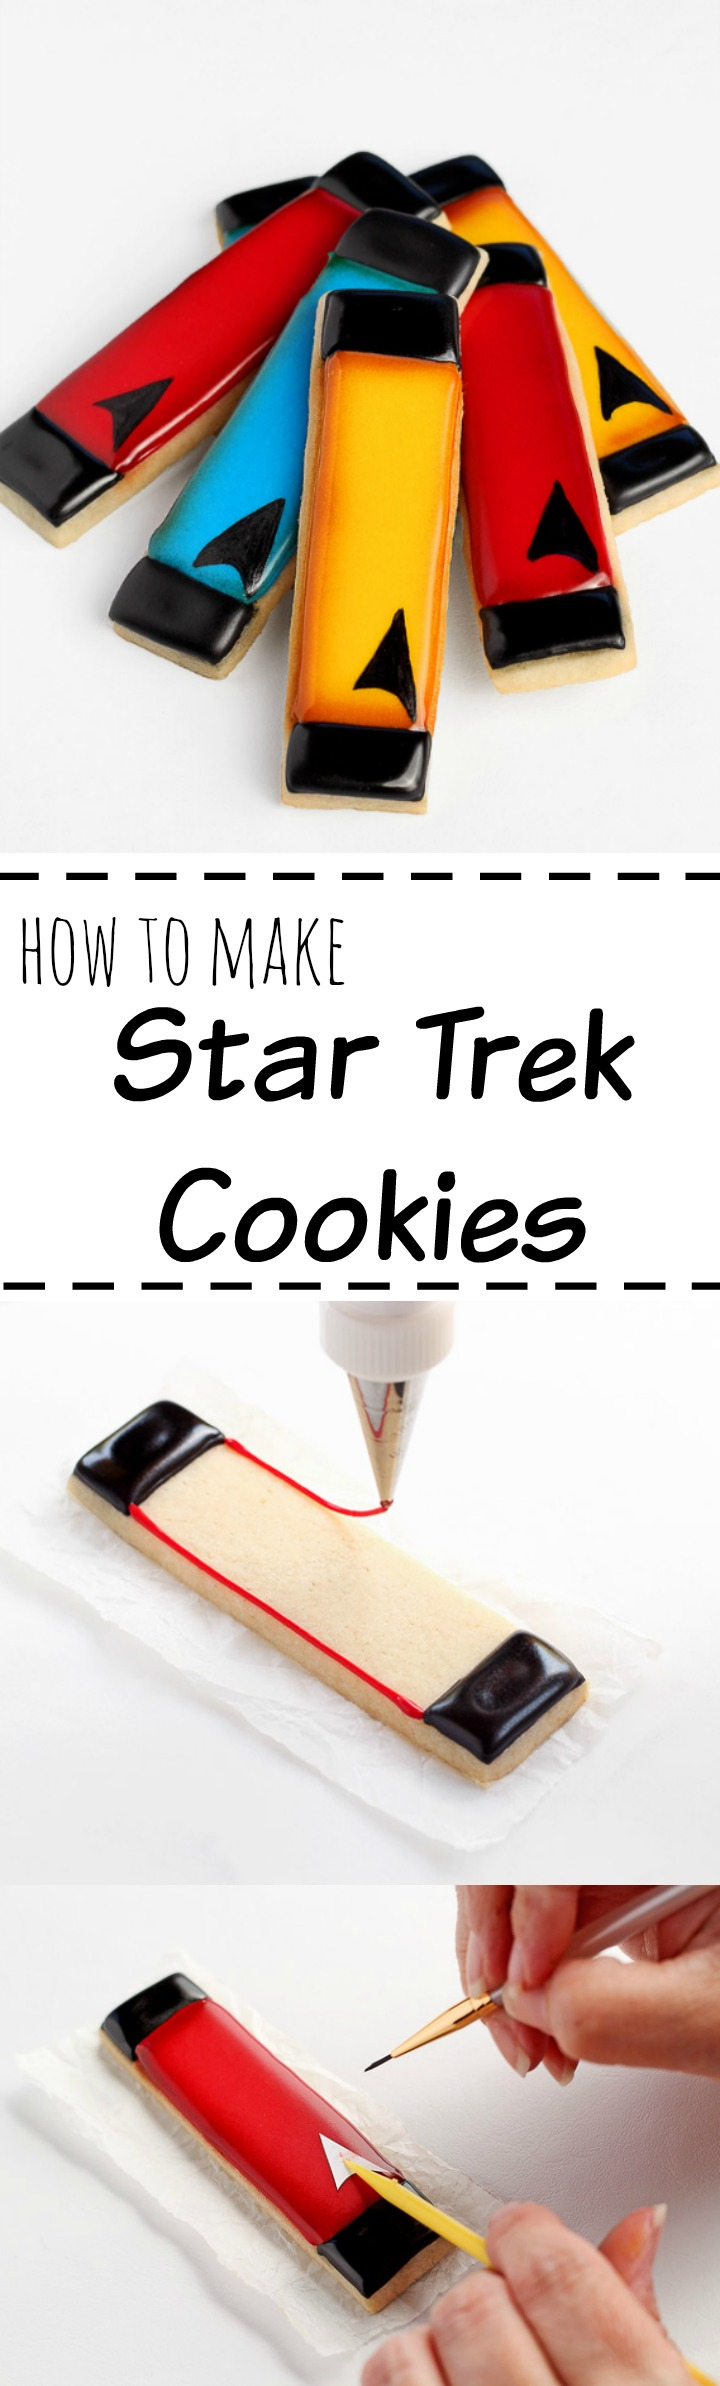 Simple Star Trek Cookies with a Simple How to Video Tutorial | The Bearfoot Baker